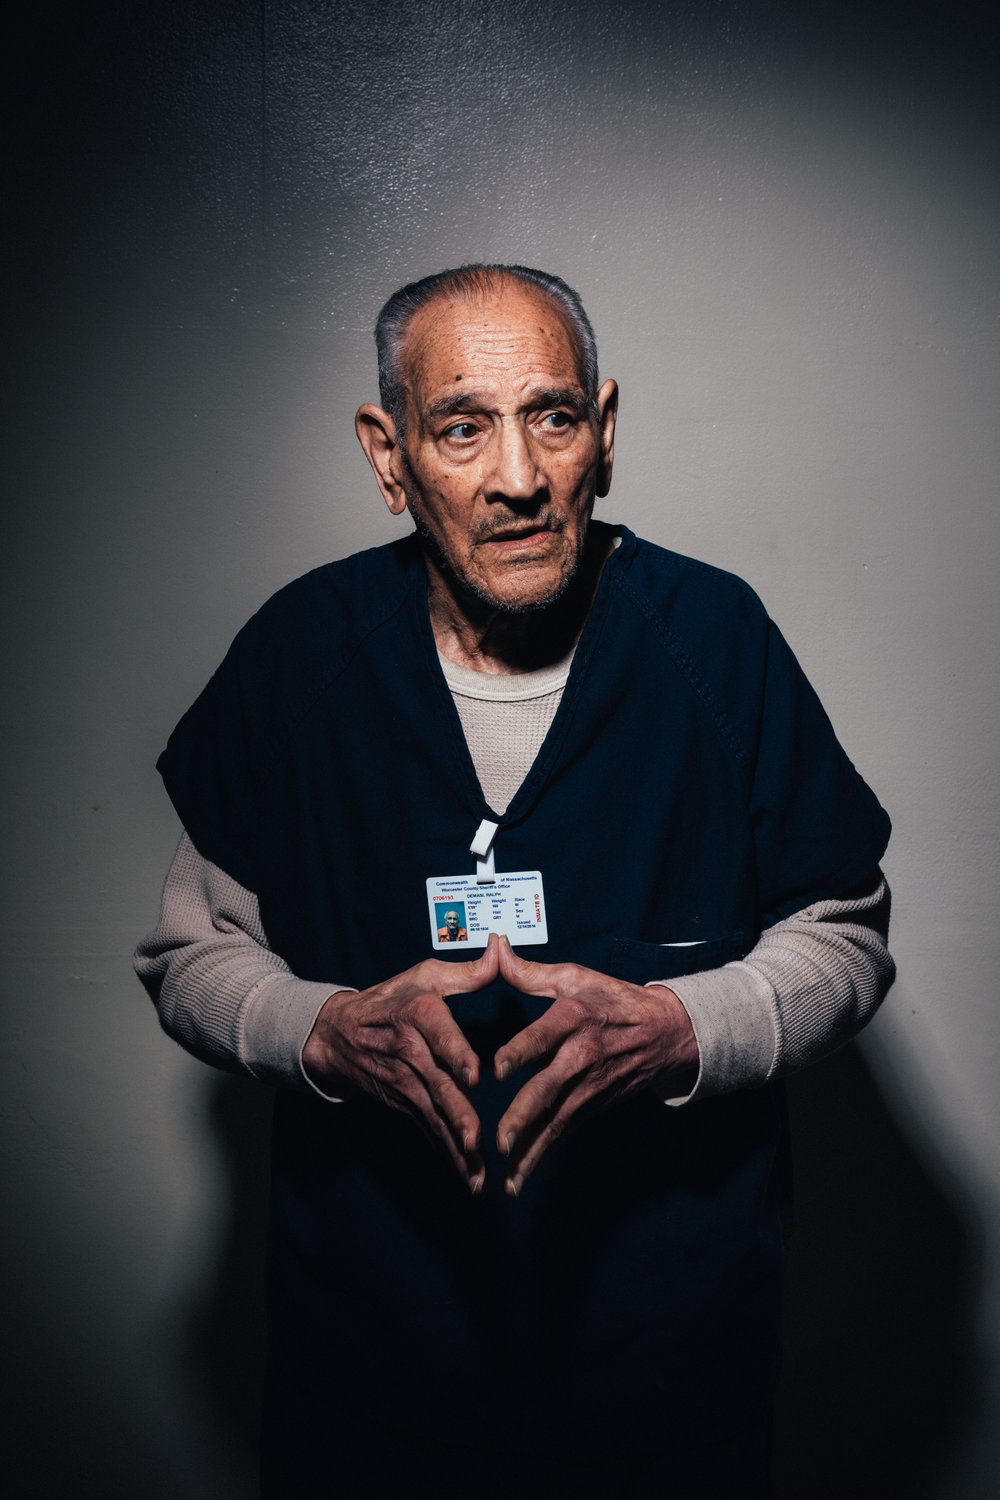 In 2016, 80-year-old Ralph DeMasi was arrested for the 1991 murder of Ed Morlock Sr. DeMasi is currently being held in Worcester County Jail, awaiting trial. Courtesy of The New York Times/Andrew White.